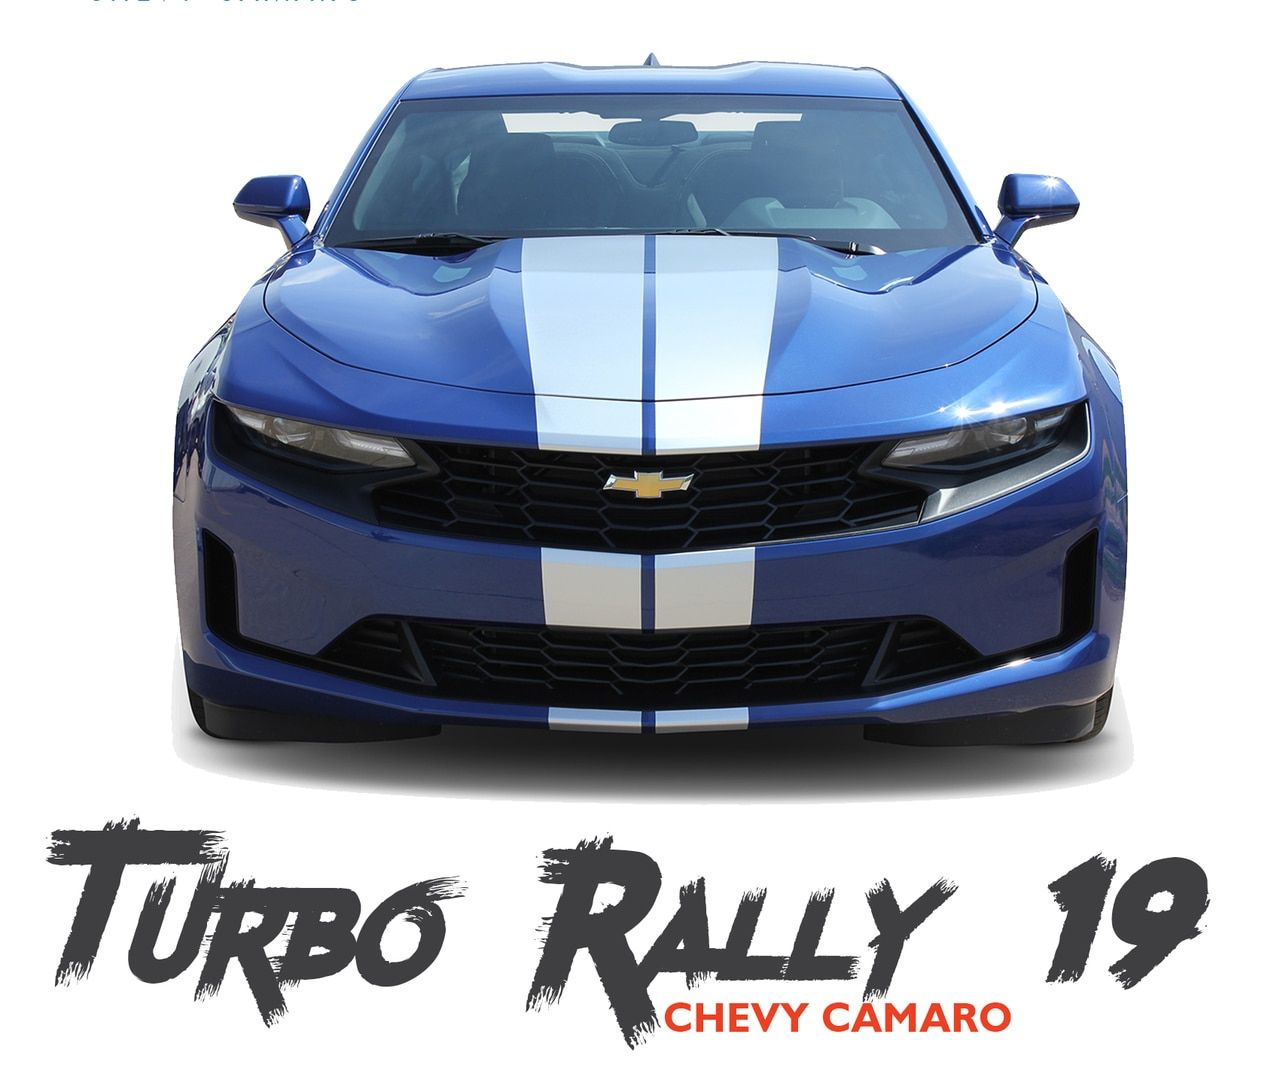 2019 2020 Chevy Camaro Racing Stripes Turbo Rally 19 Hood Decals Bumper To Bumper Vinyl Graphics Kit Racing Stripes Chevy Camaro Camaro